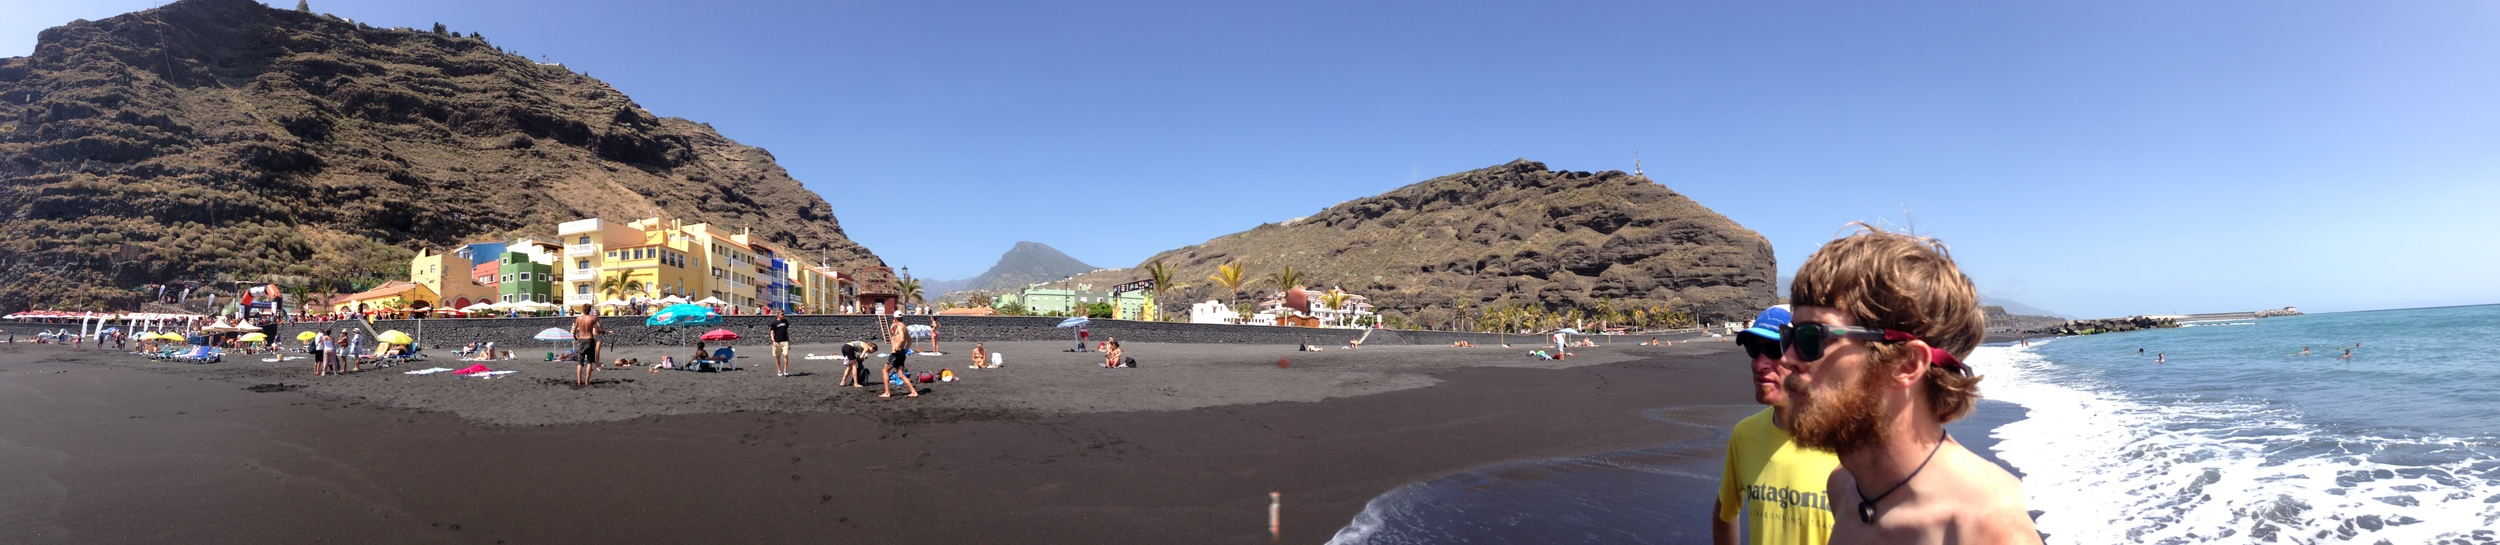 Tezacorte - lowest point on the course (after the start)… Some beach time with Patagonia teammates before race day.